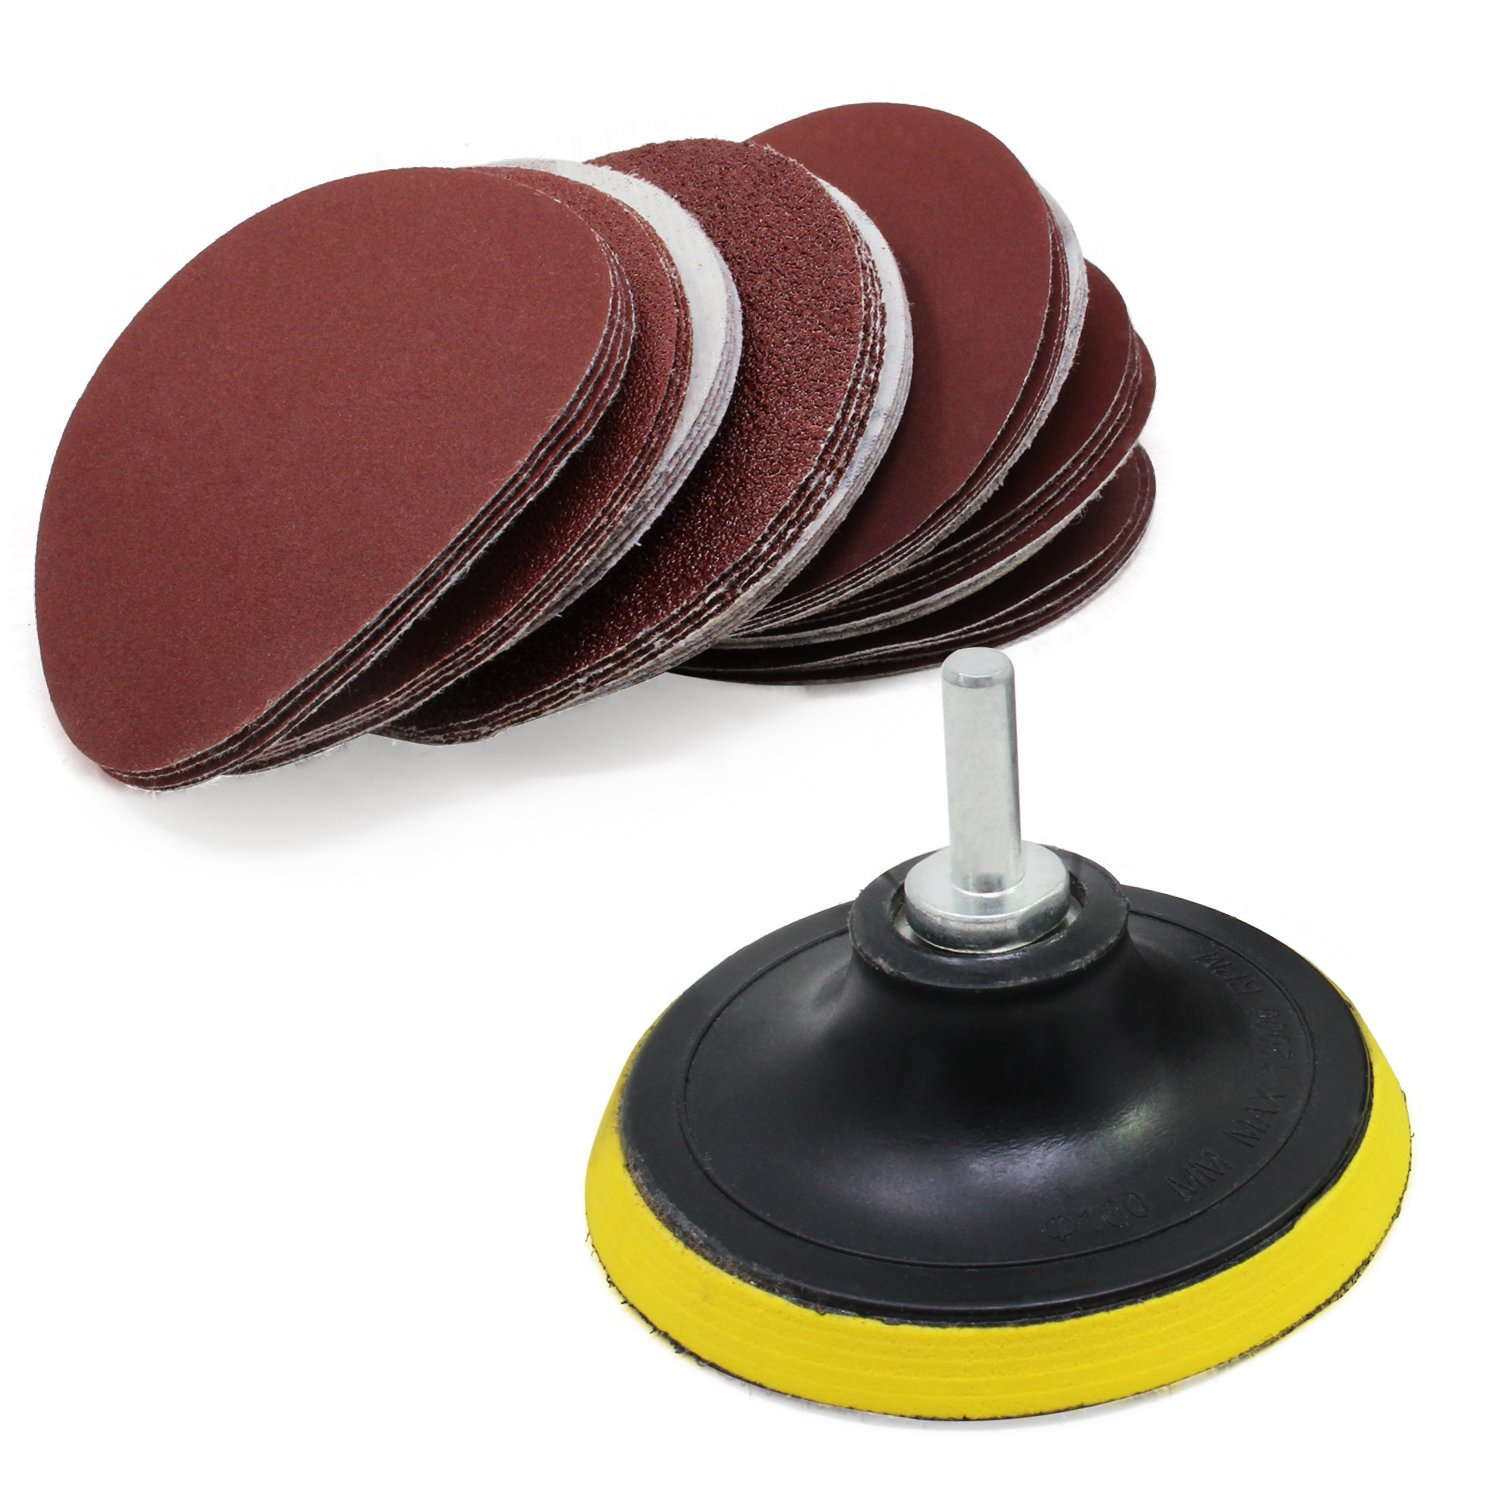 HSeaMall 50PCS 100MM// 4inch Round Sanding Discs Pads Sandpaper Hook and Loop 60 80 100 120 180 240 320 400 600 800 Assorted Grits With Backing Pad Sanding Paper Pads For Random Orbital Sander